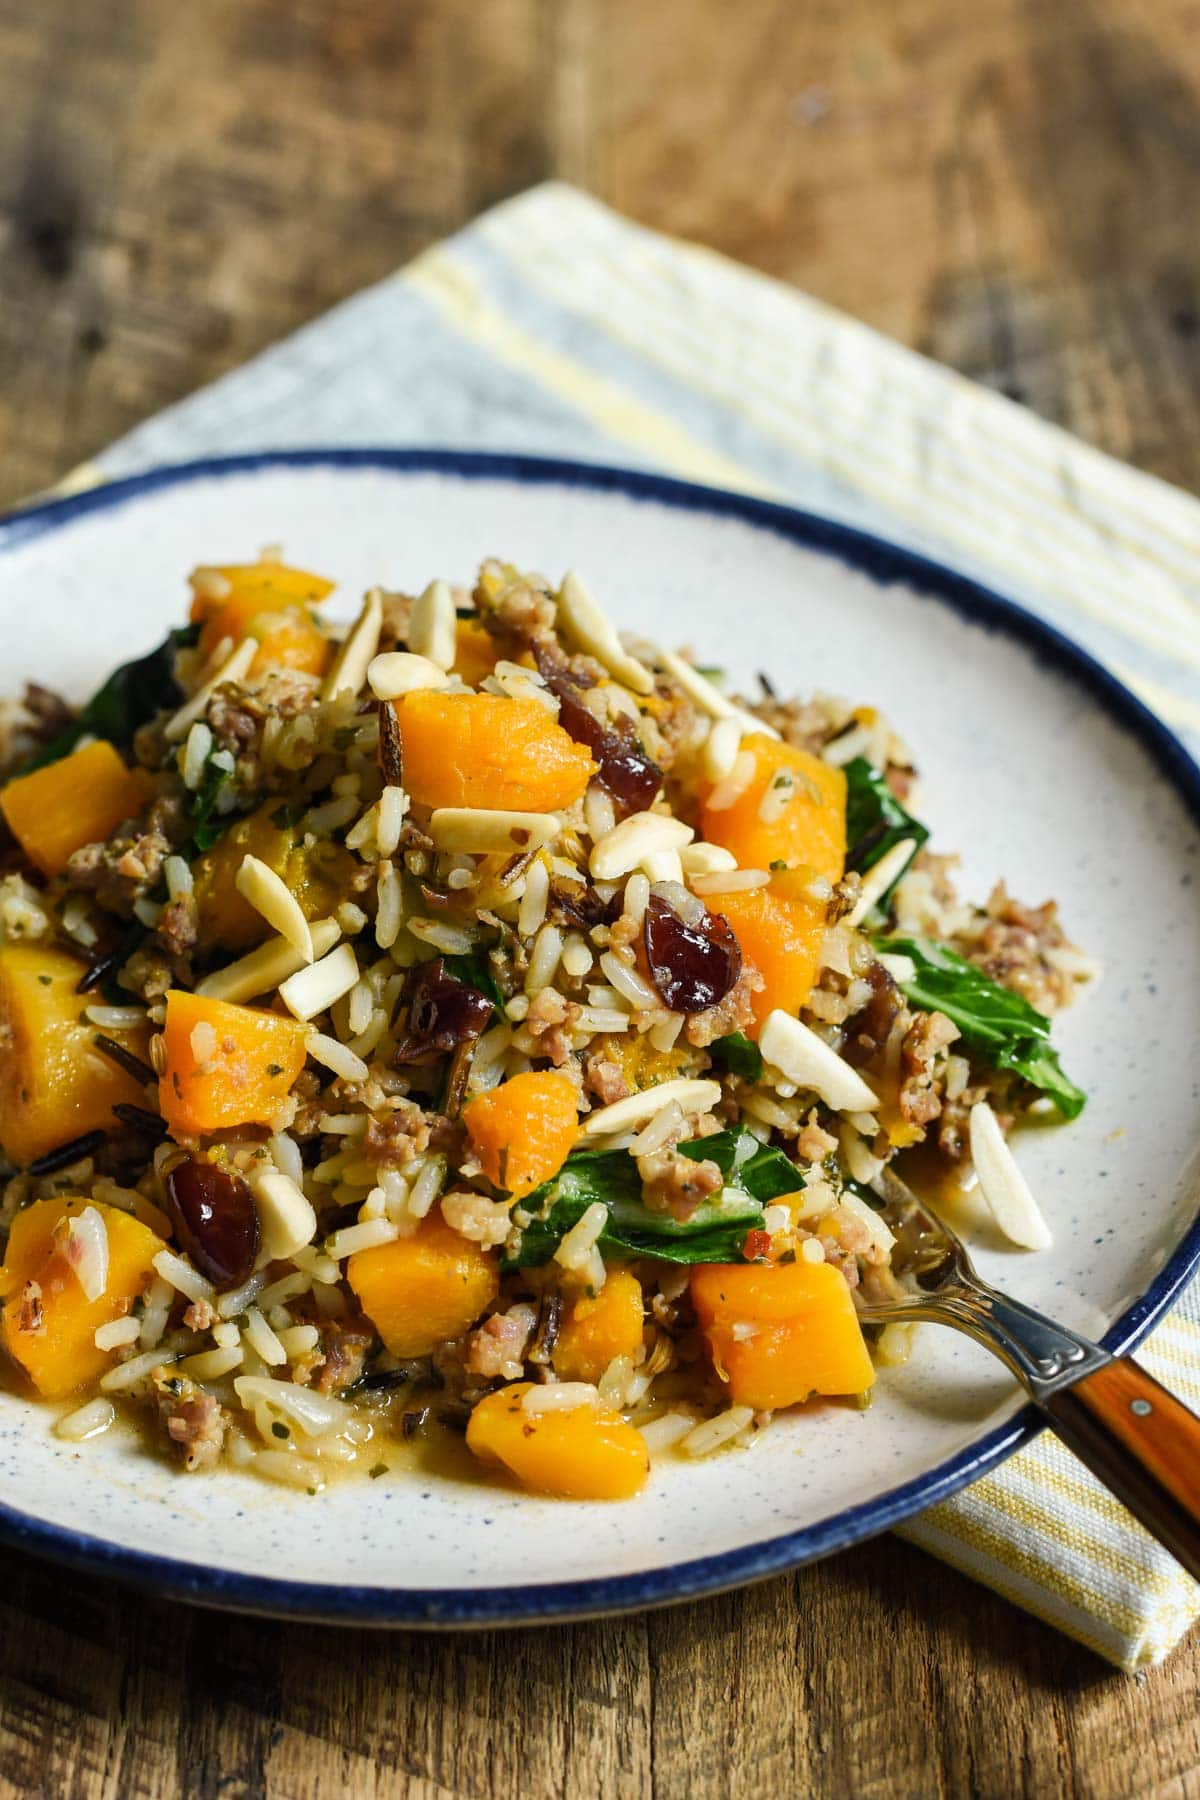 If you're looking for a quick, healthy one pot meal, try this Skillet Sausage and Rice with butternut squash, cranberries, and almonds!